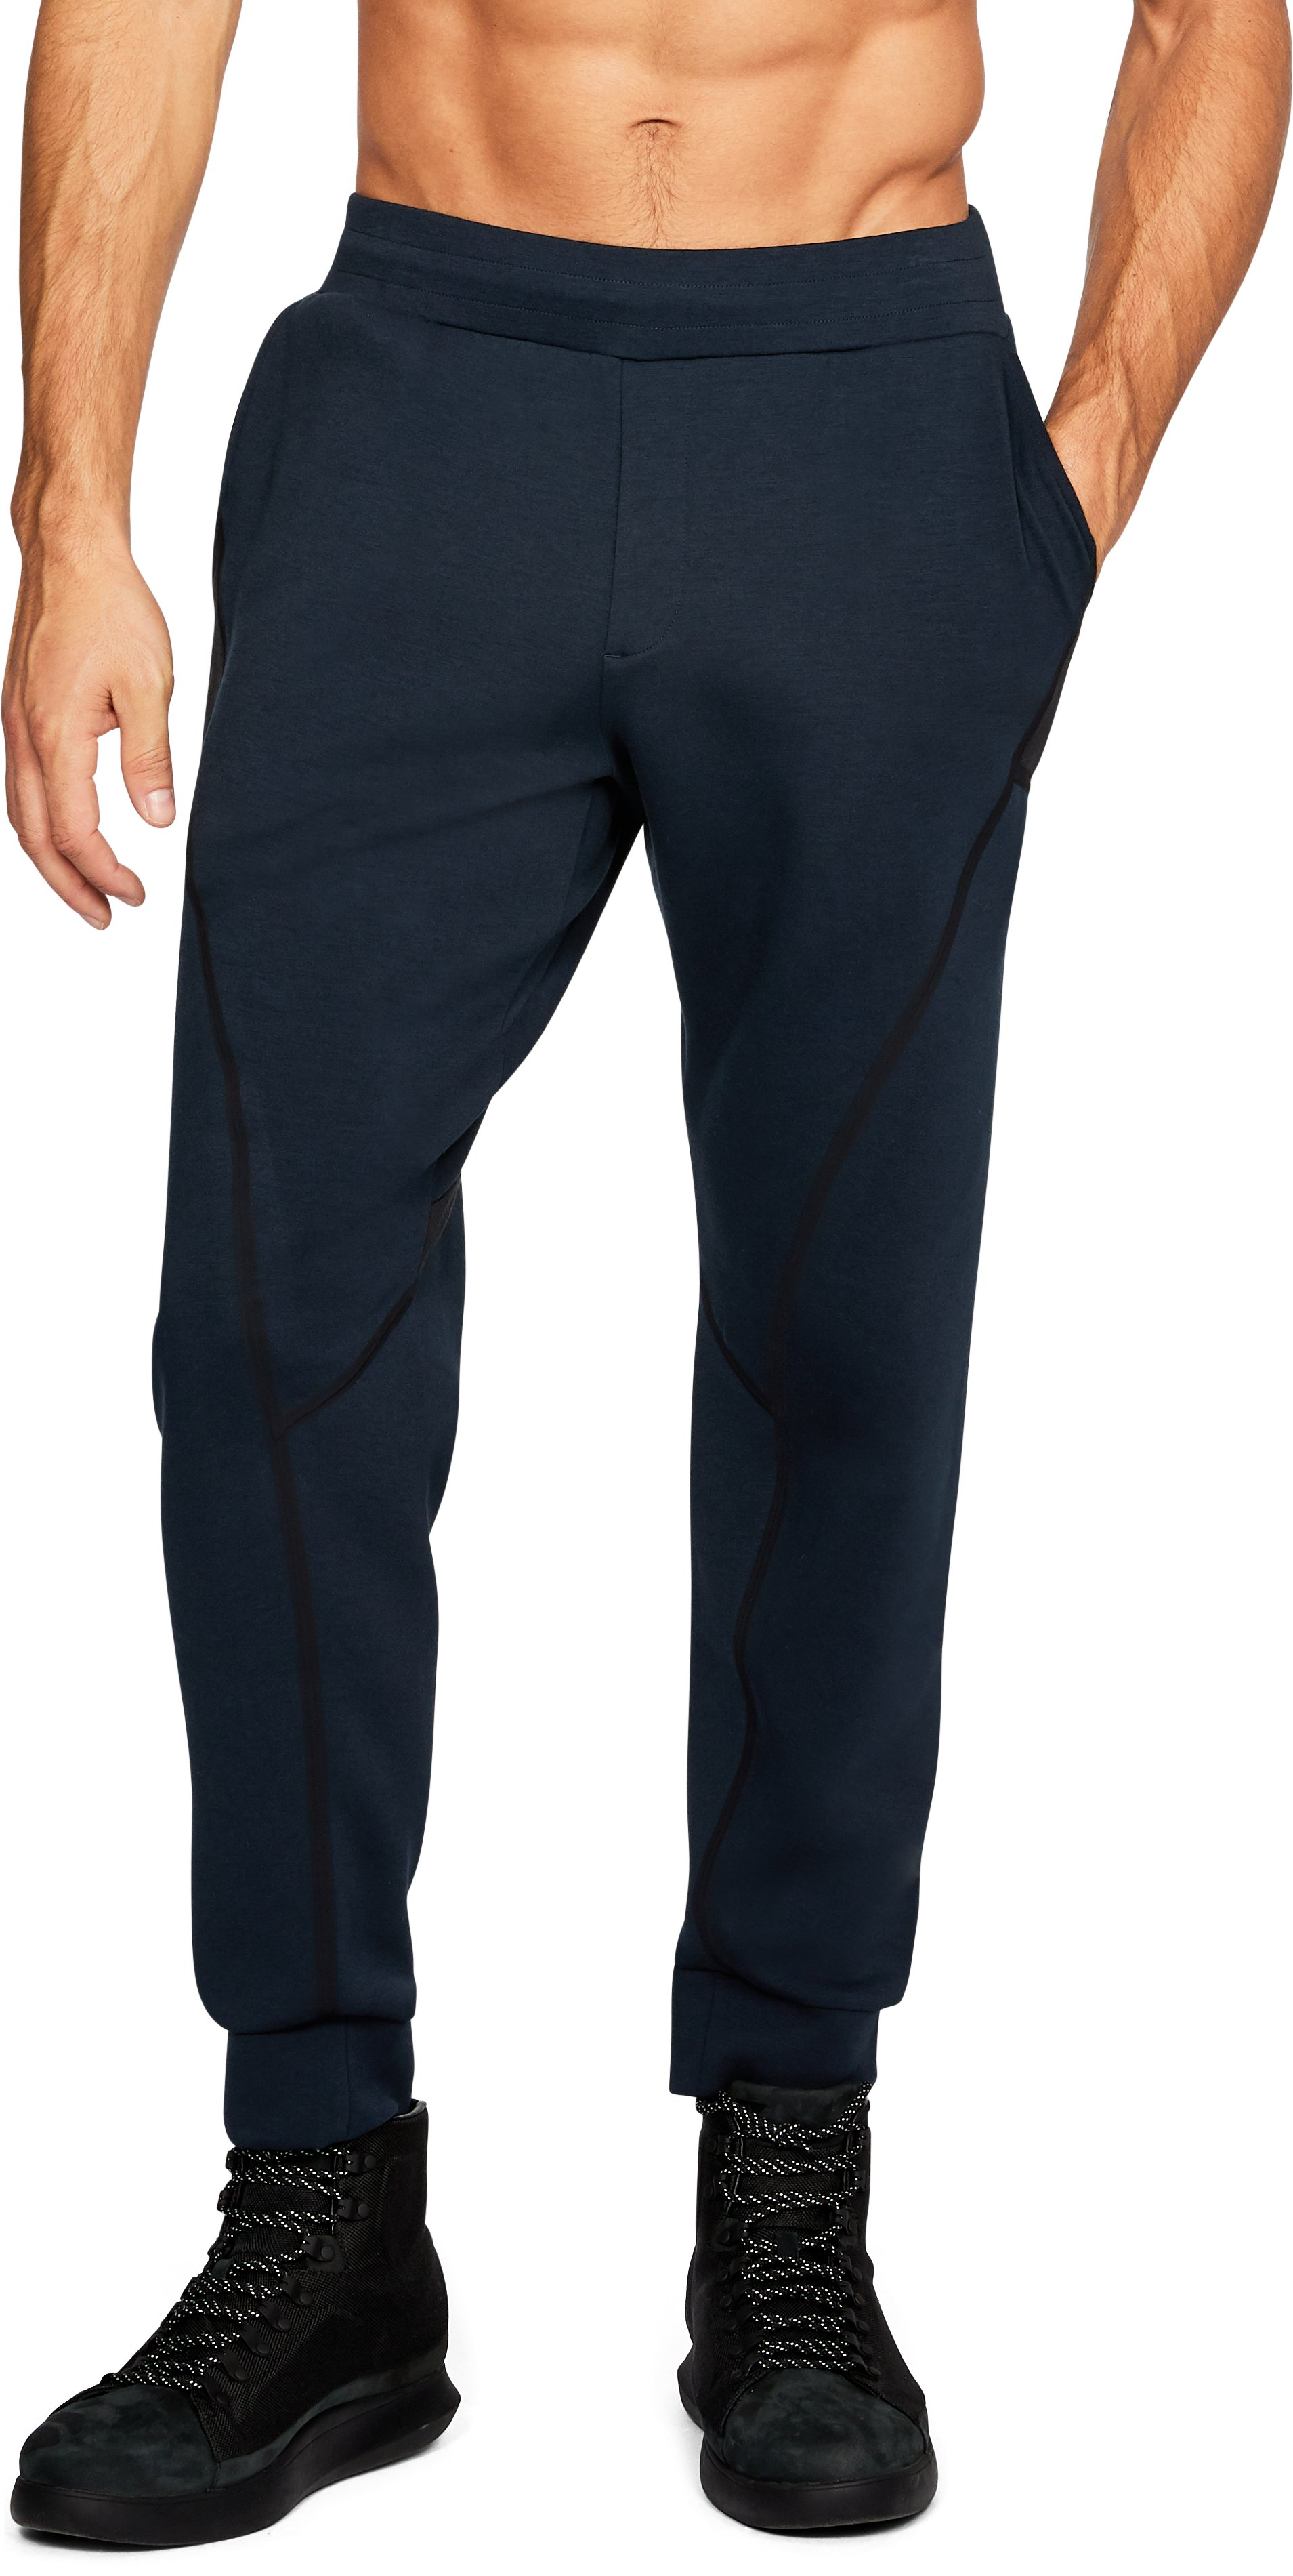 Men's UAS Tailgate Sweatpants, Navy, undefined